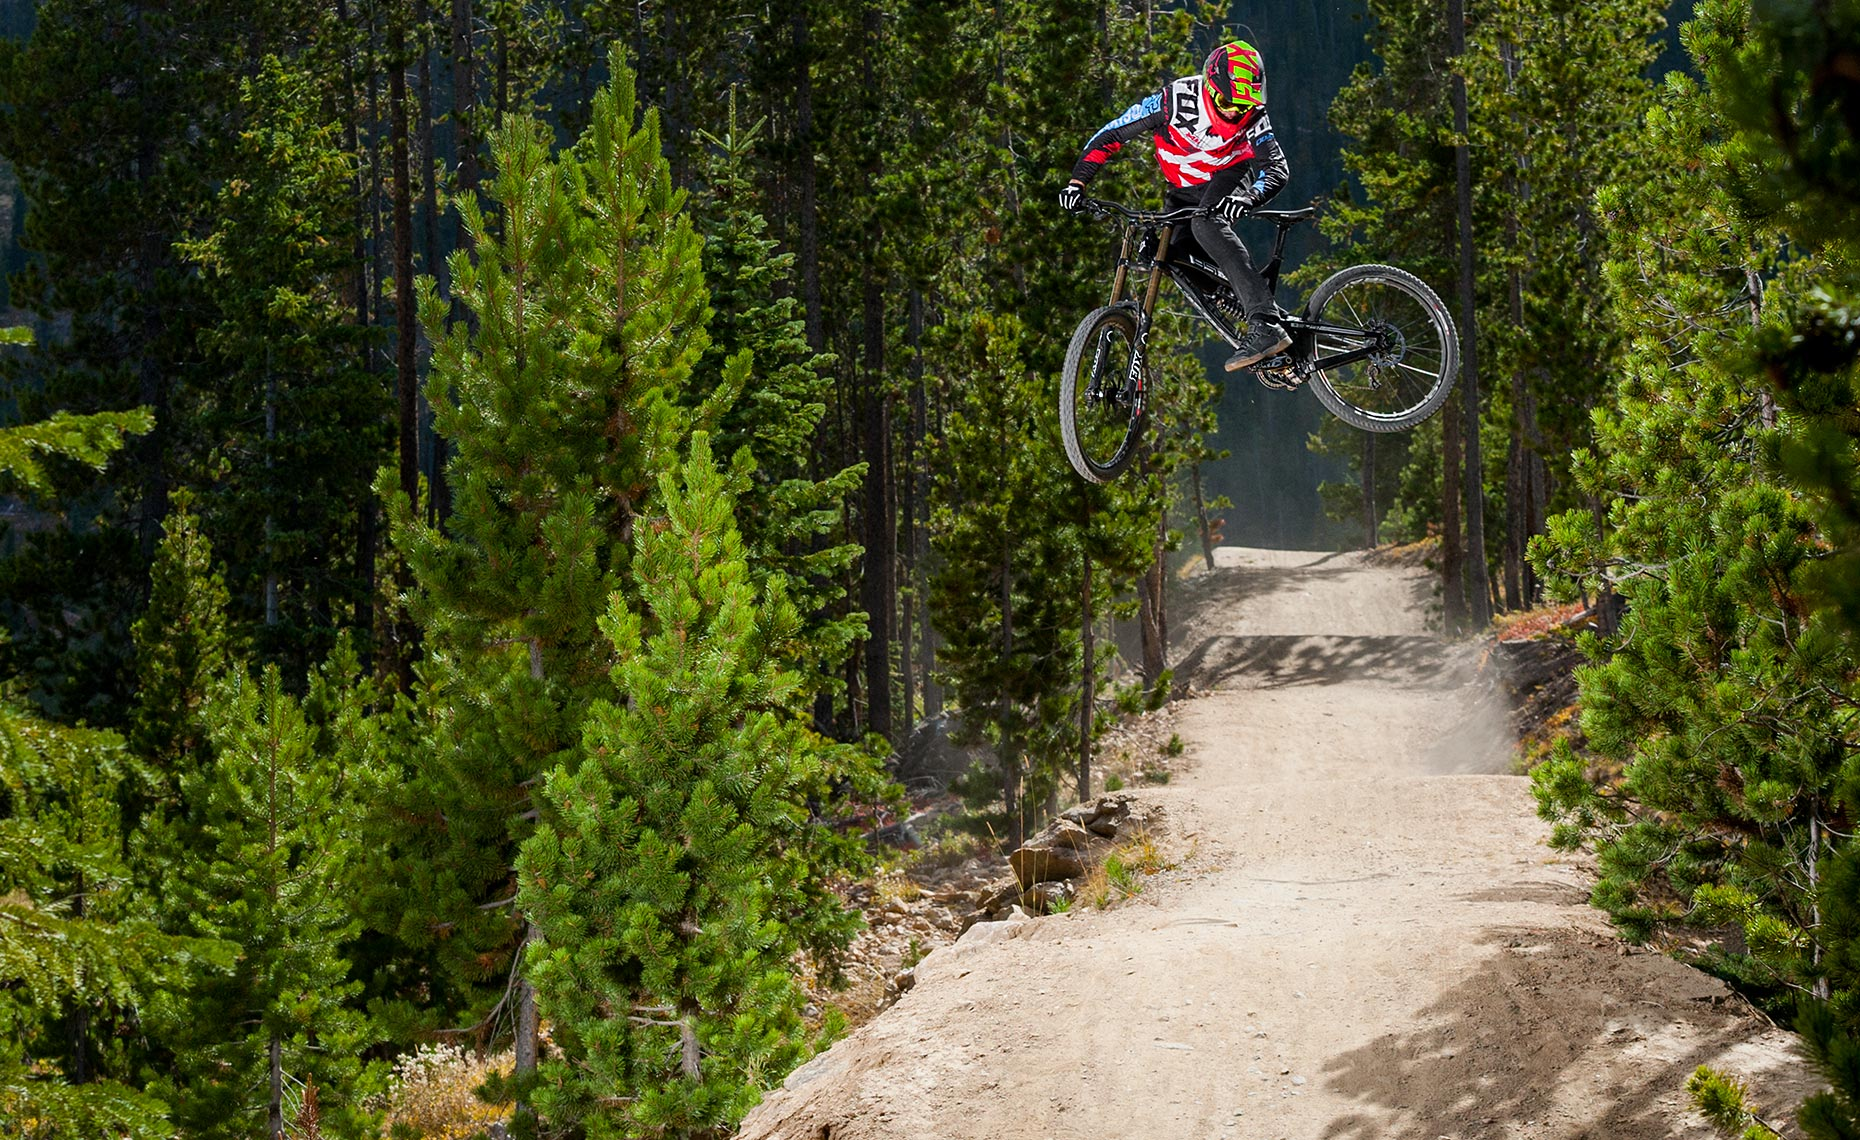 0904-Dillon-Lemarr-Trestle-Bike-Park-Chris-Wellhausen-04-RGB